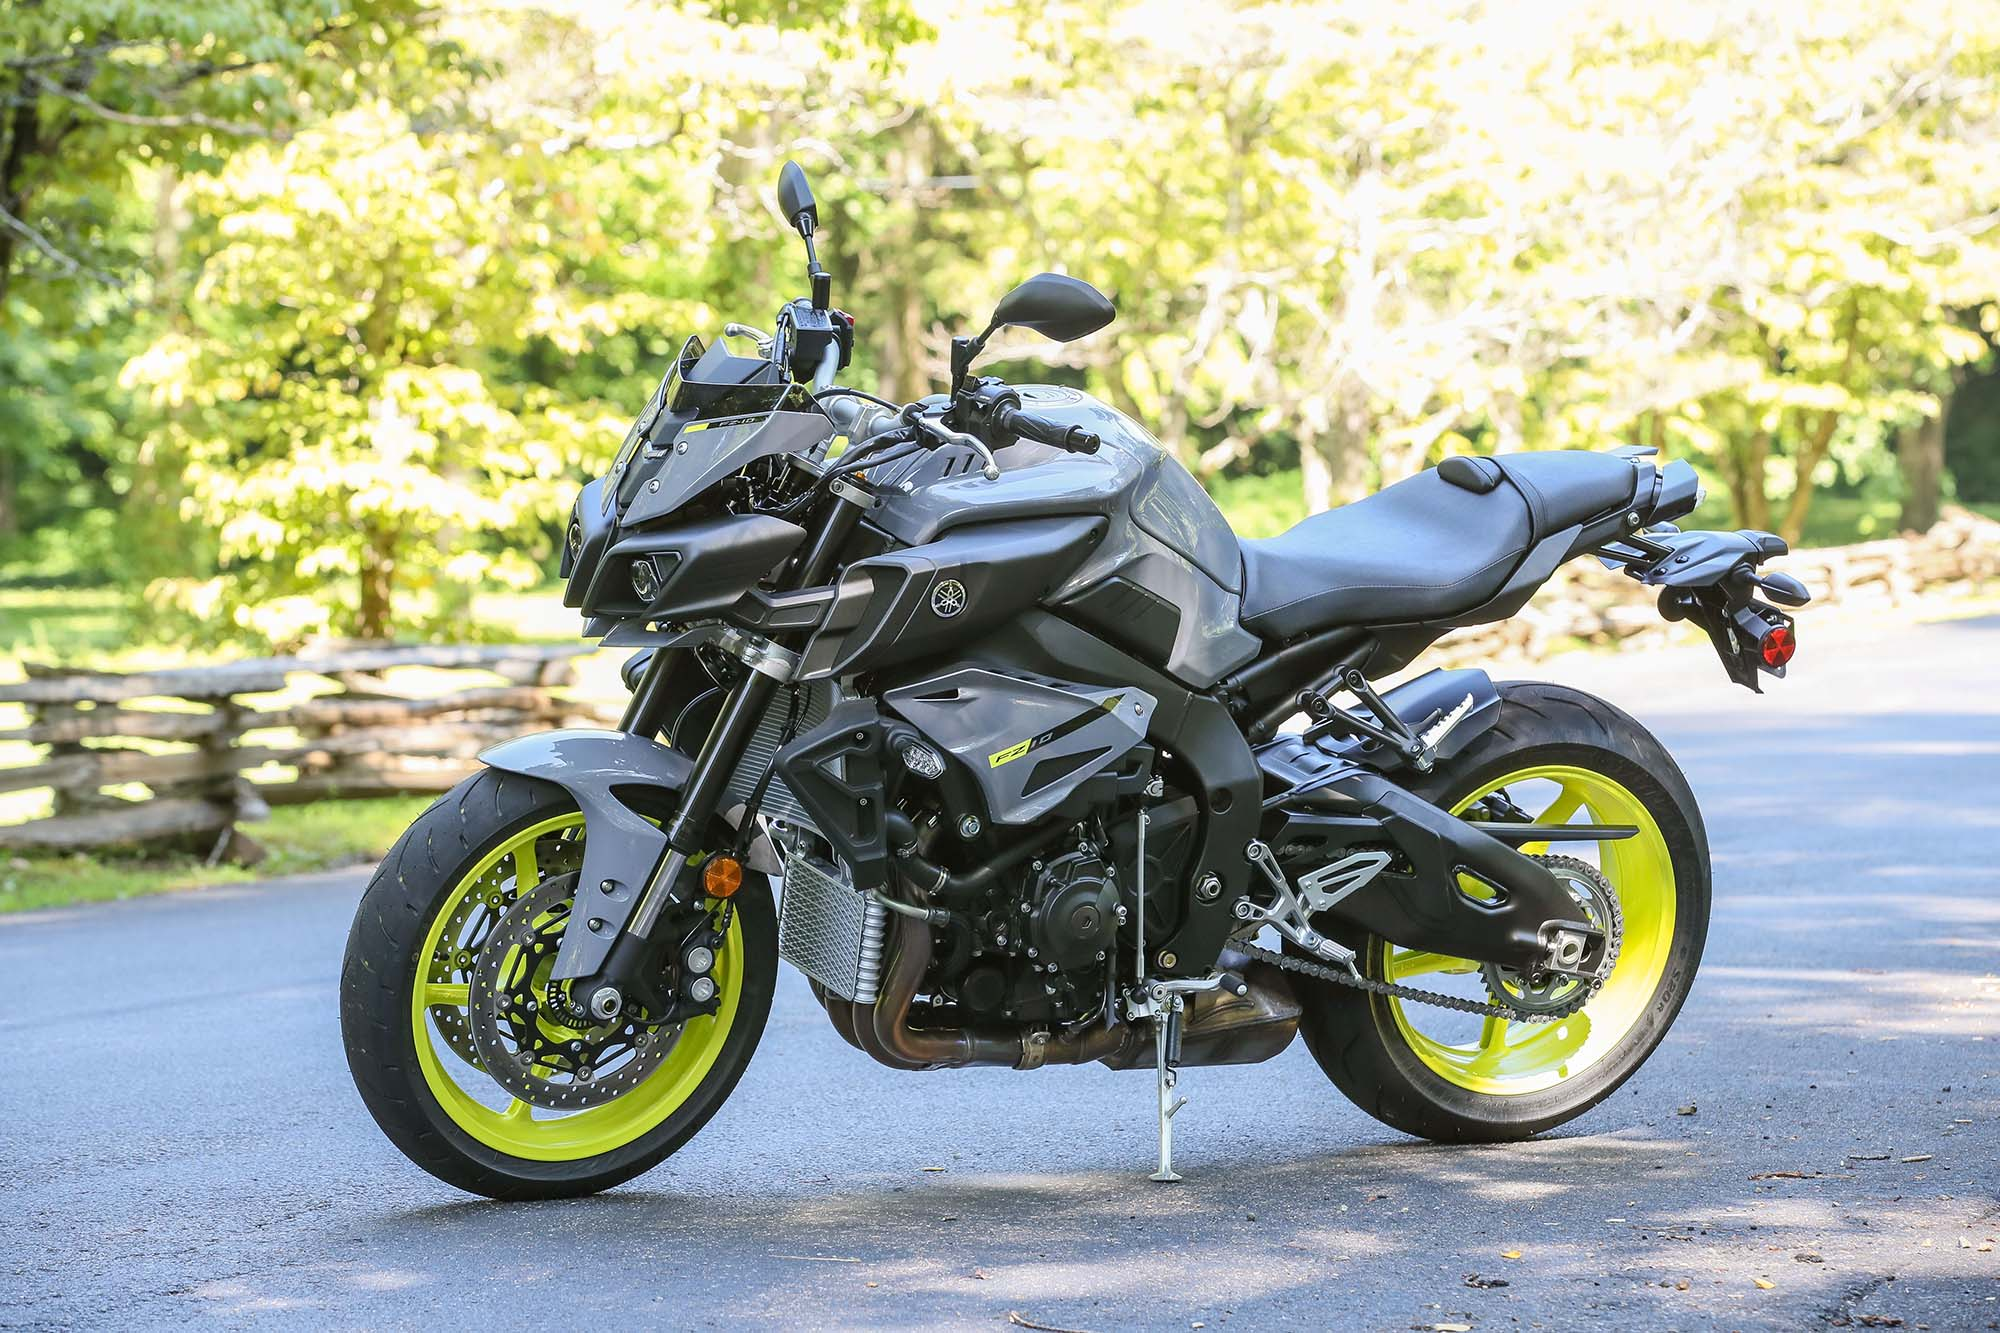 The 2017 Yamaha FZ-10 Tourer - Only For Europe, But…